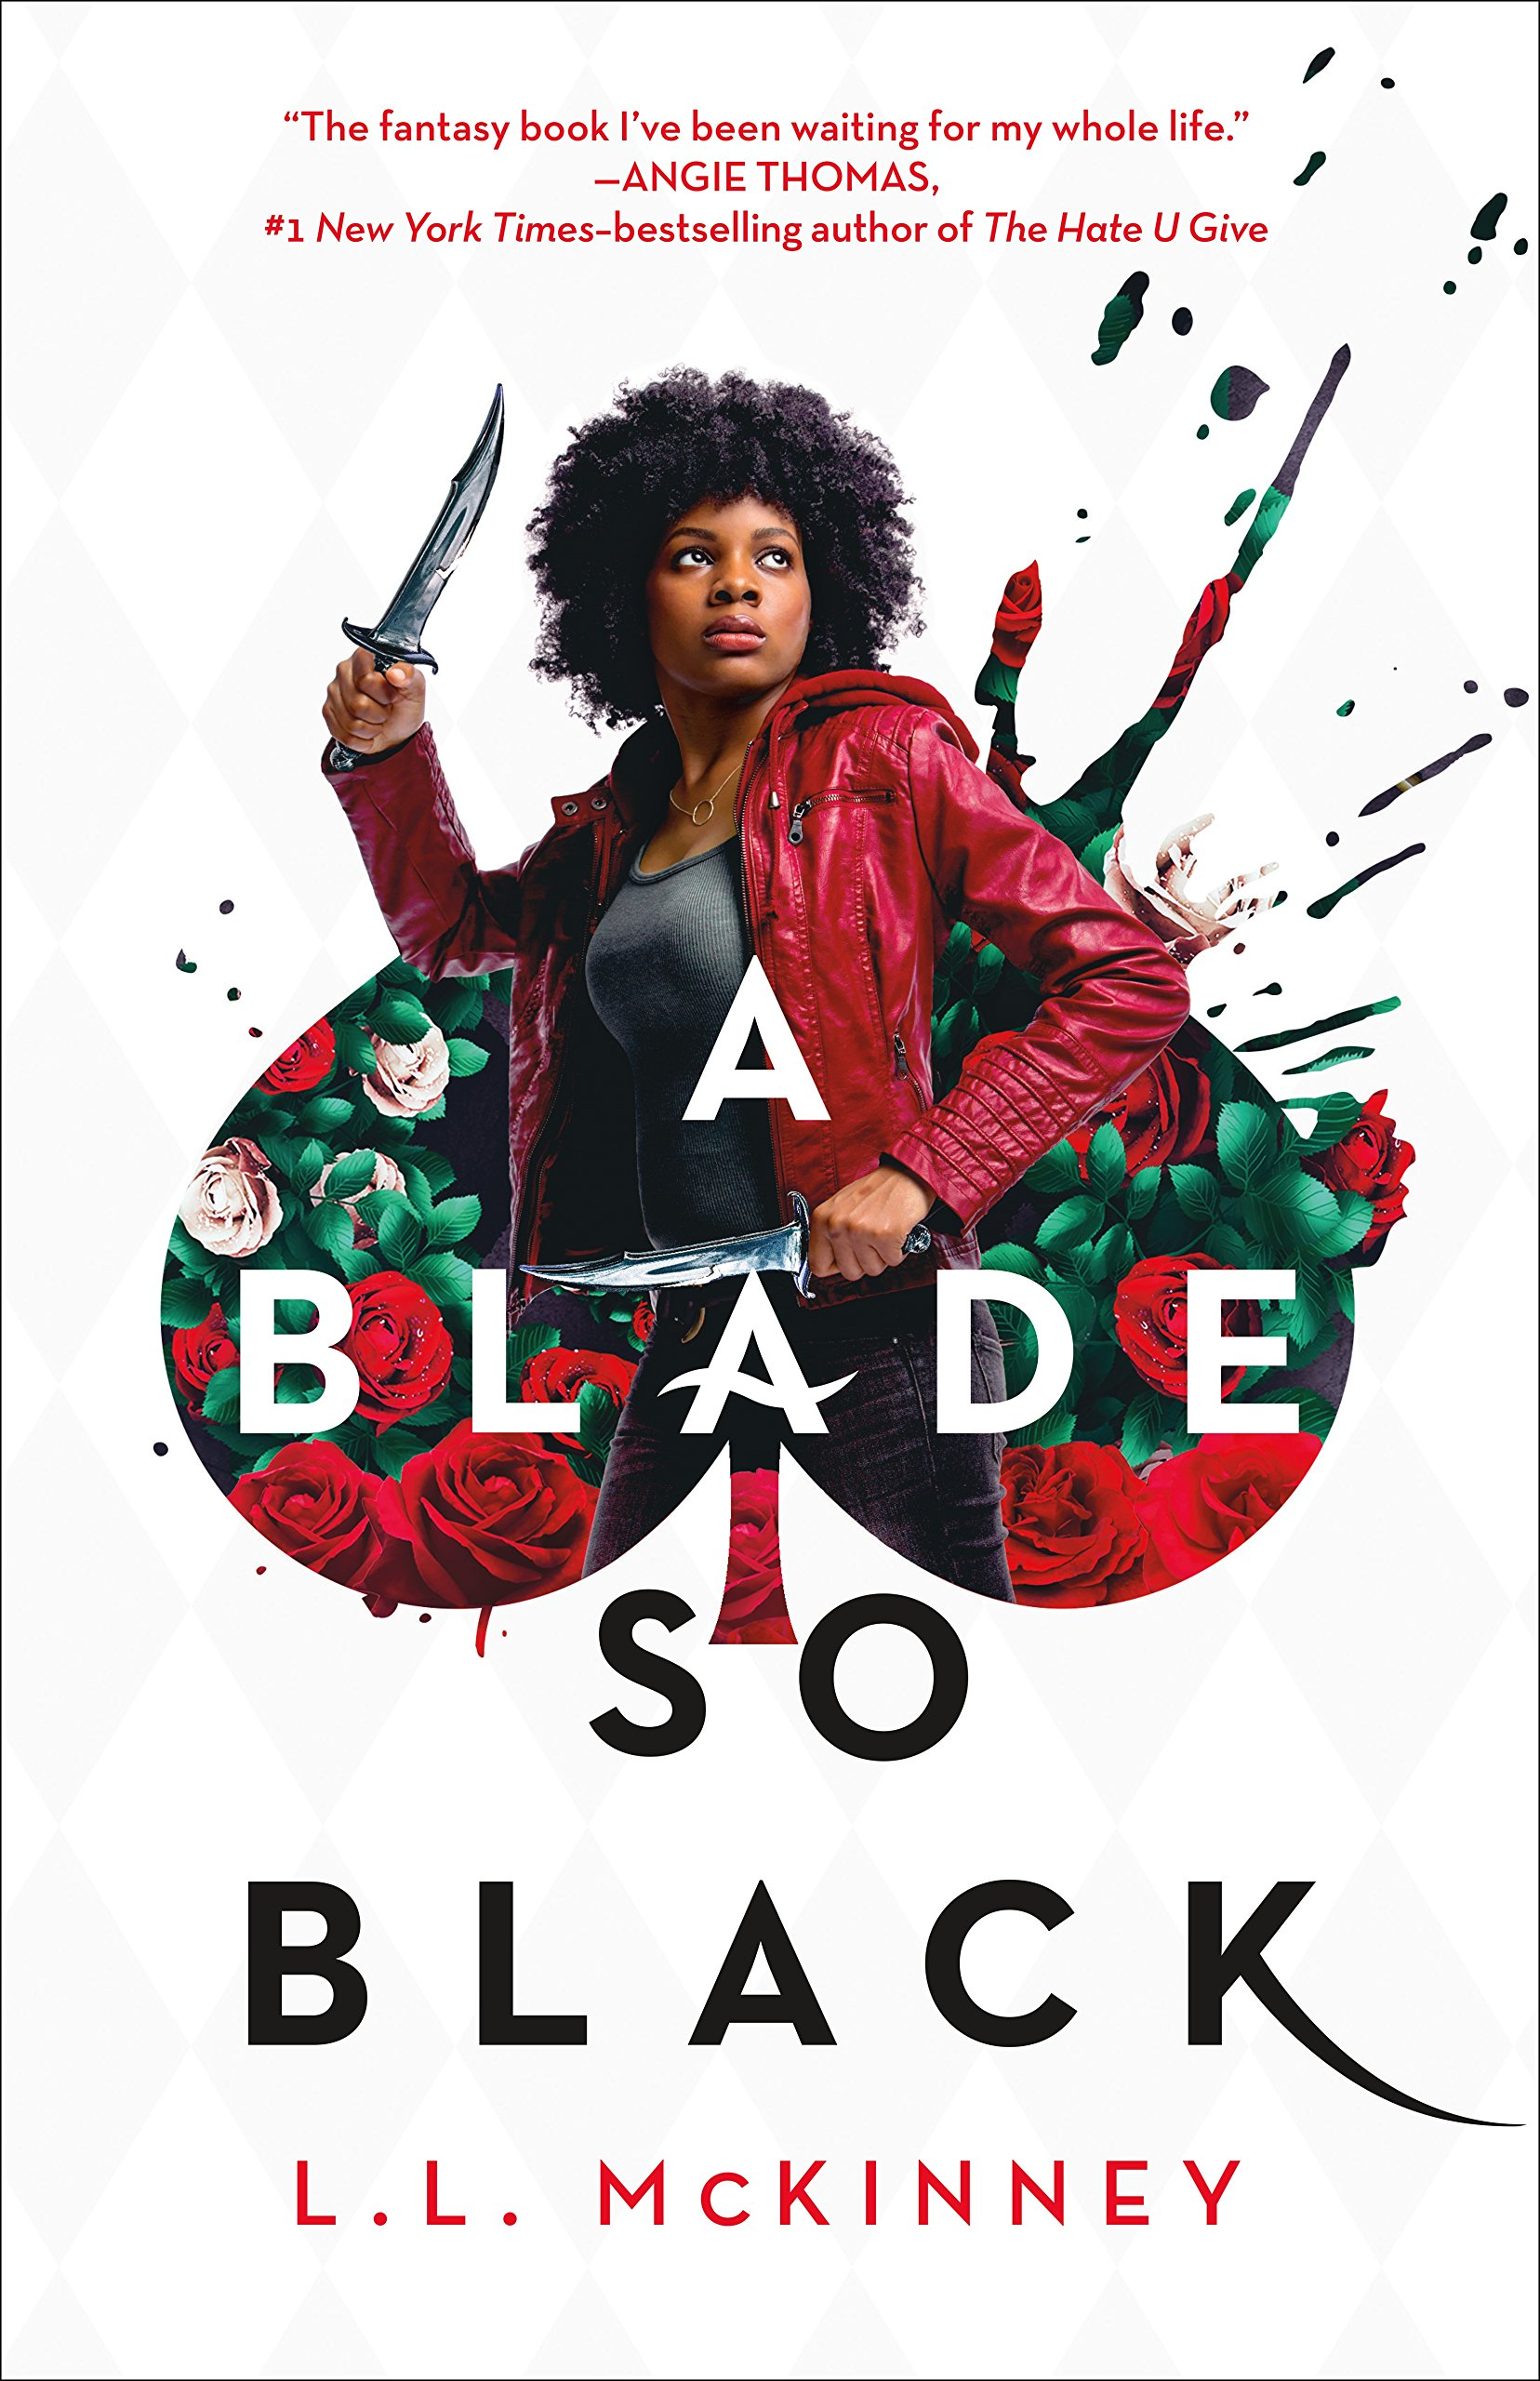 A Blade So Black by L.L. McKinney - Image from Amazon.com